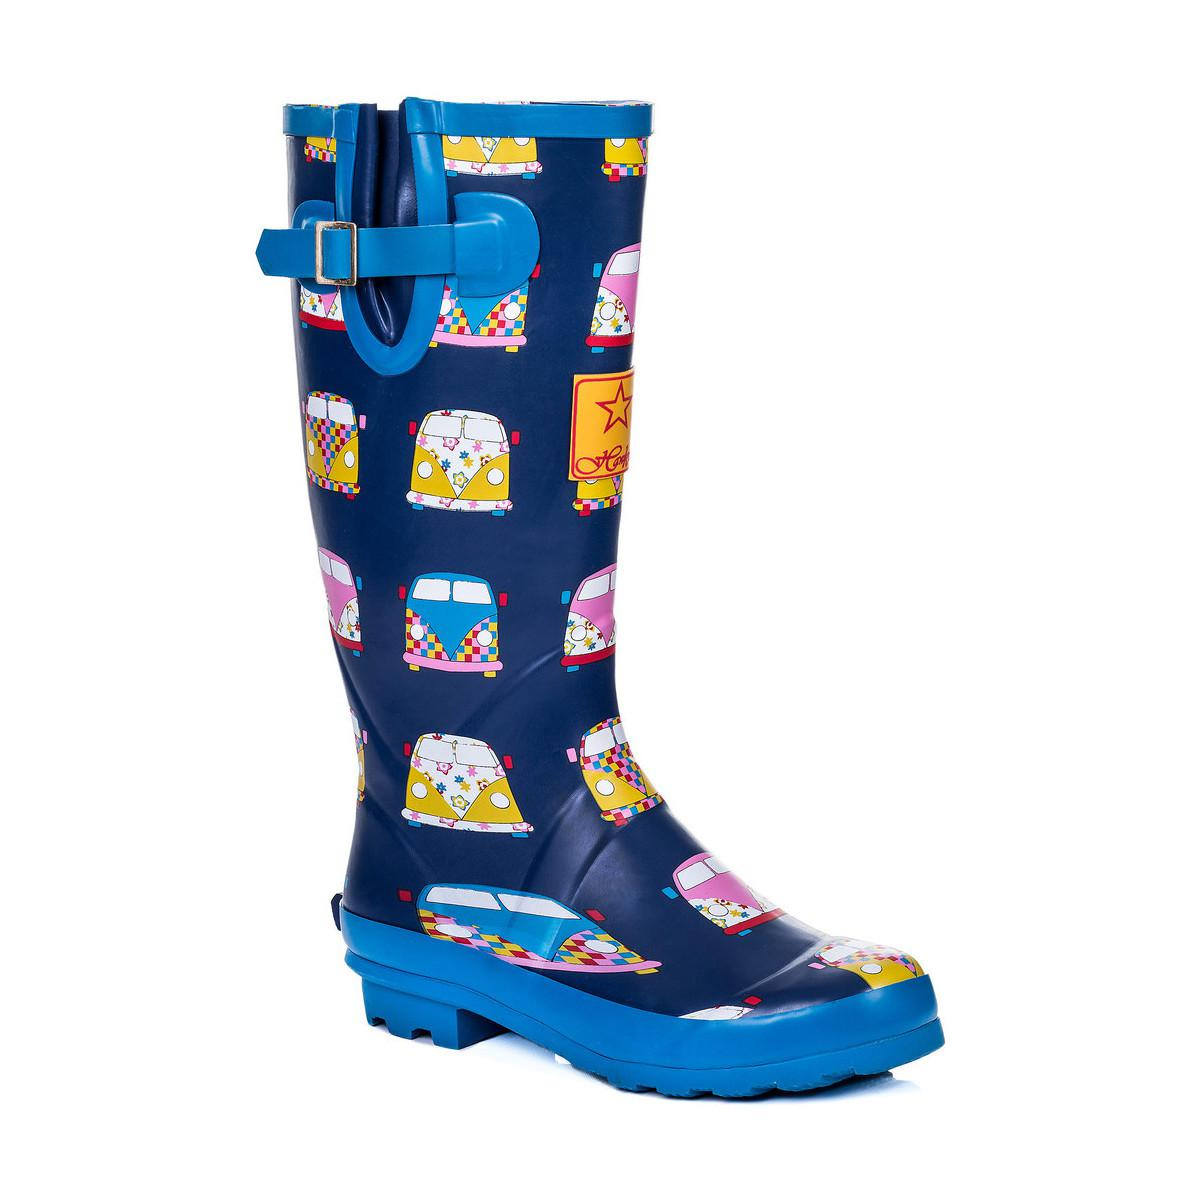 68c1d1075800 SPYLOVEBUY Igloo Adjustable Buckle Flat Festival Wellies Rain Boots ...